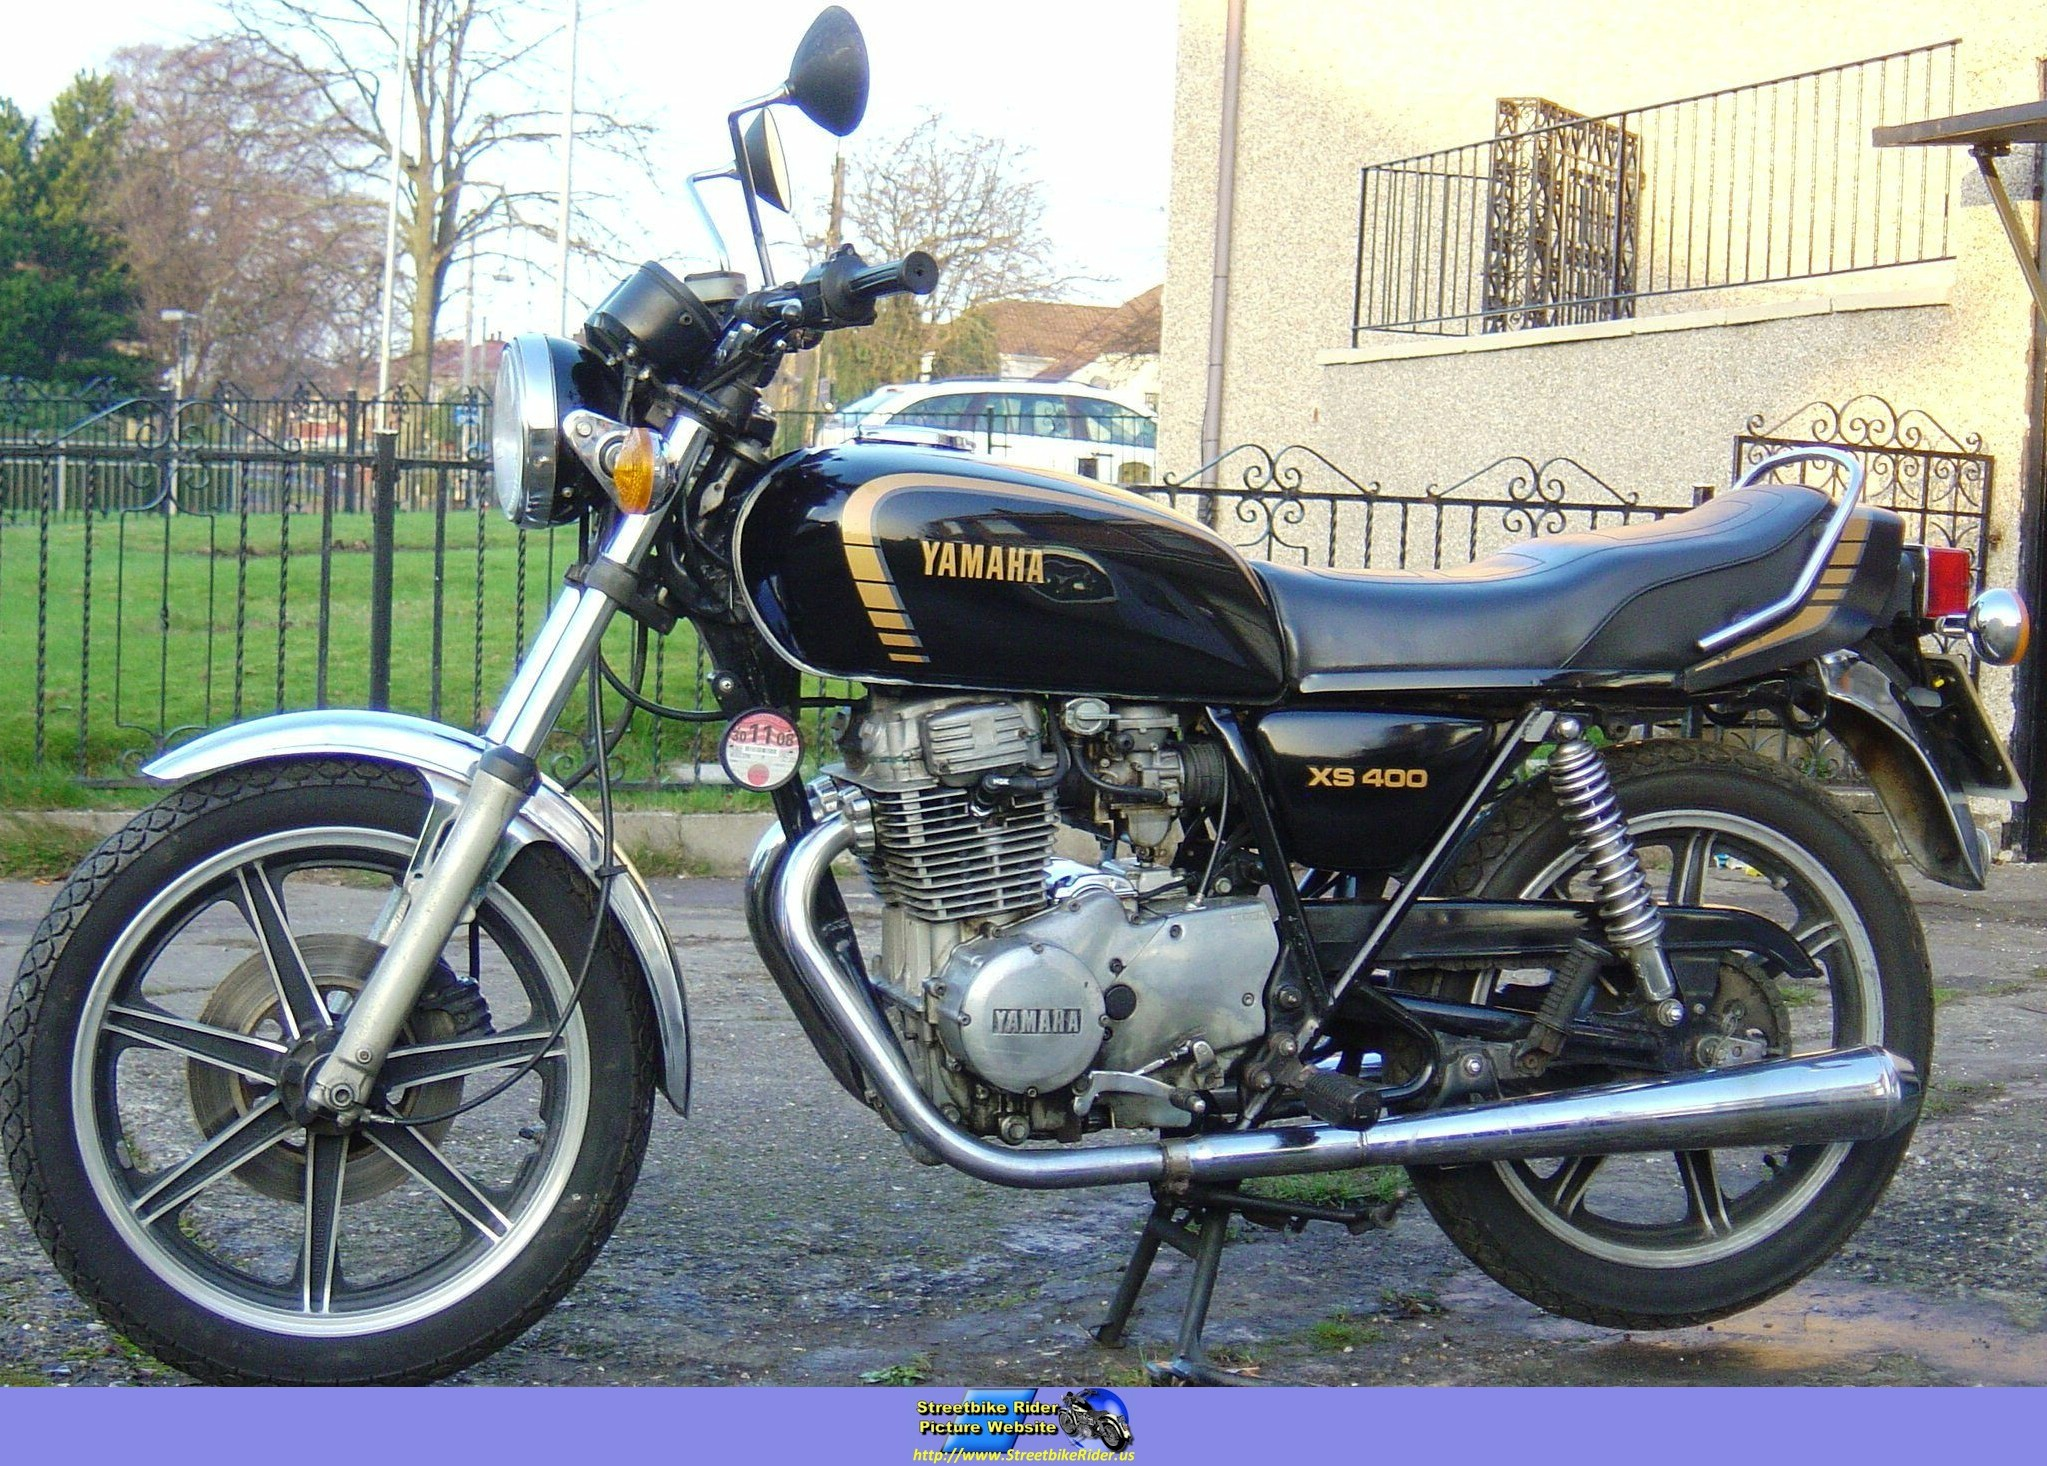 1981 yamaha xs400 related keywords